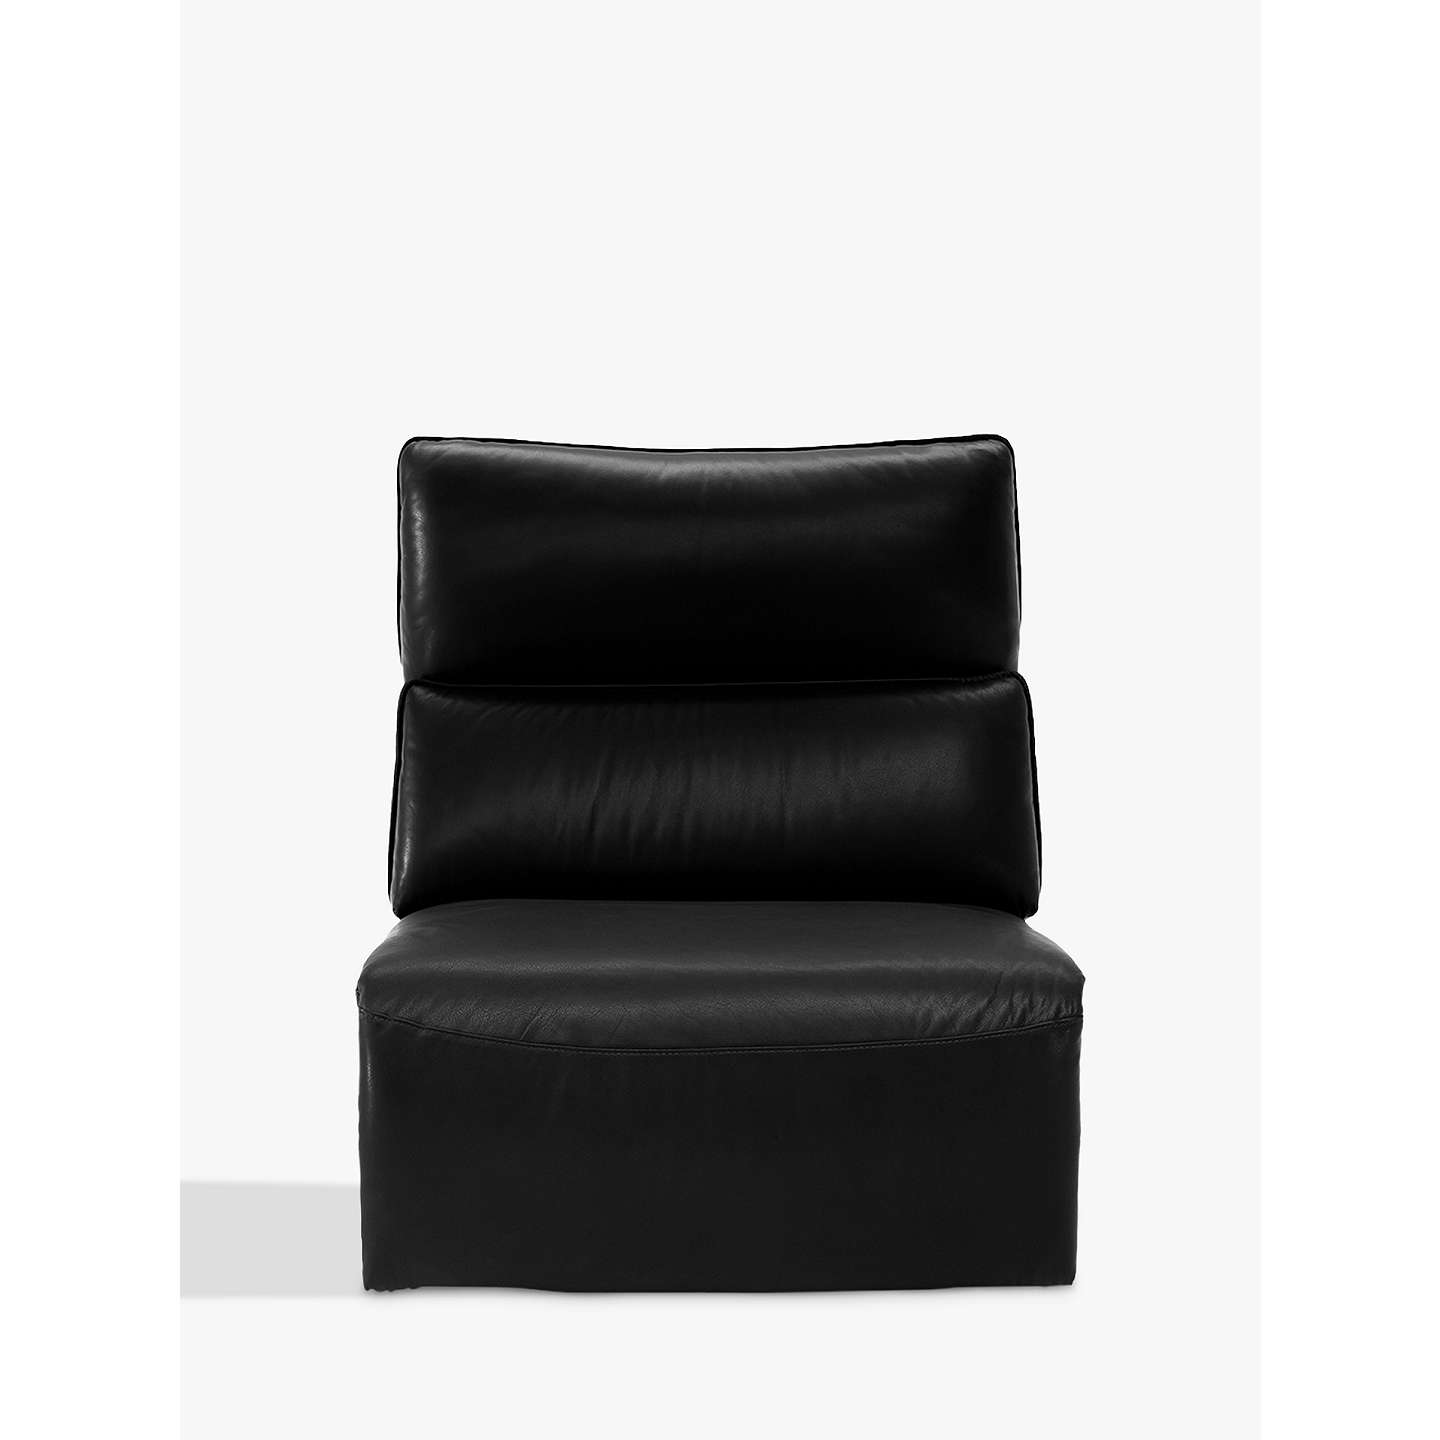 armless leather chairs. BuyNatuzzi Stupore 001 Modular Armless Leather Armchair, Dream Black Online At Johnlewis.com Chairs H